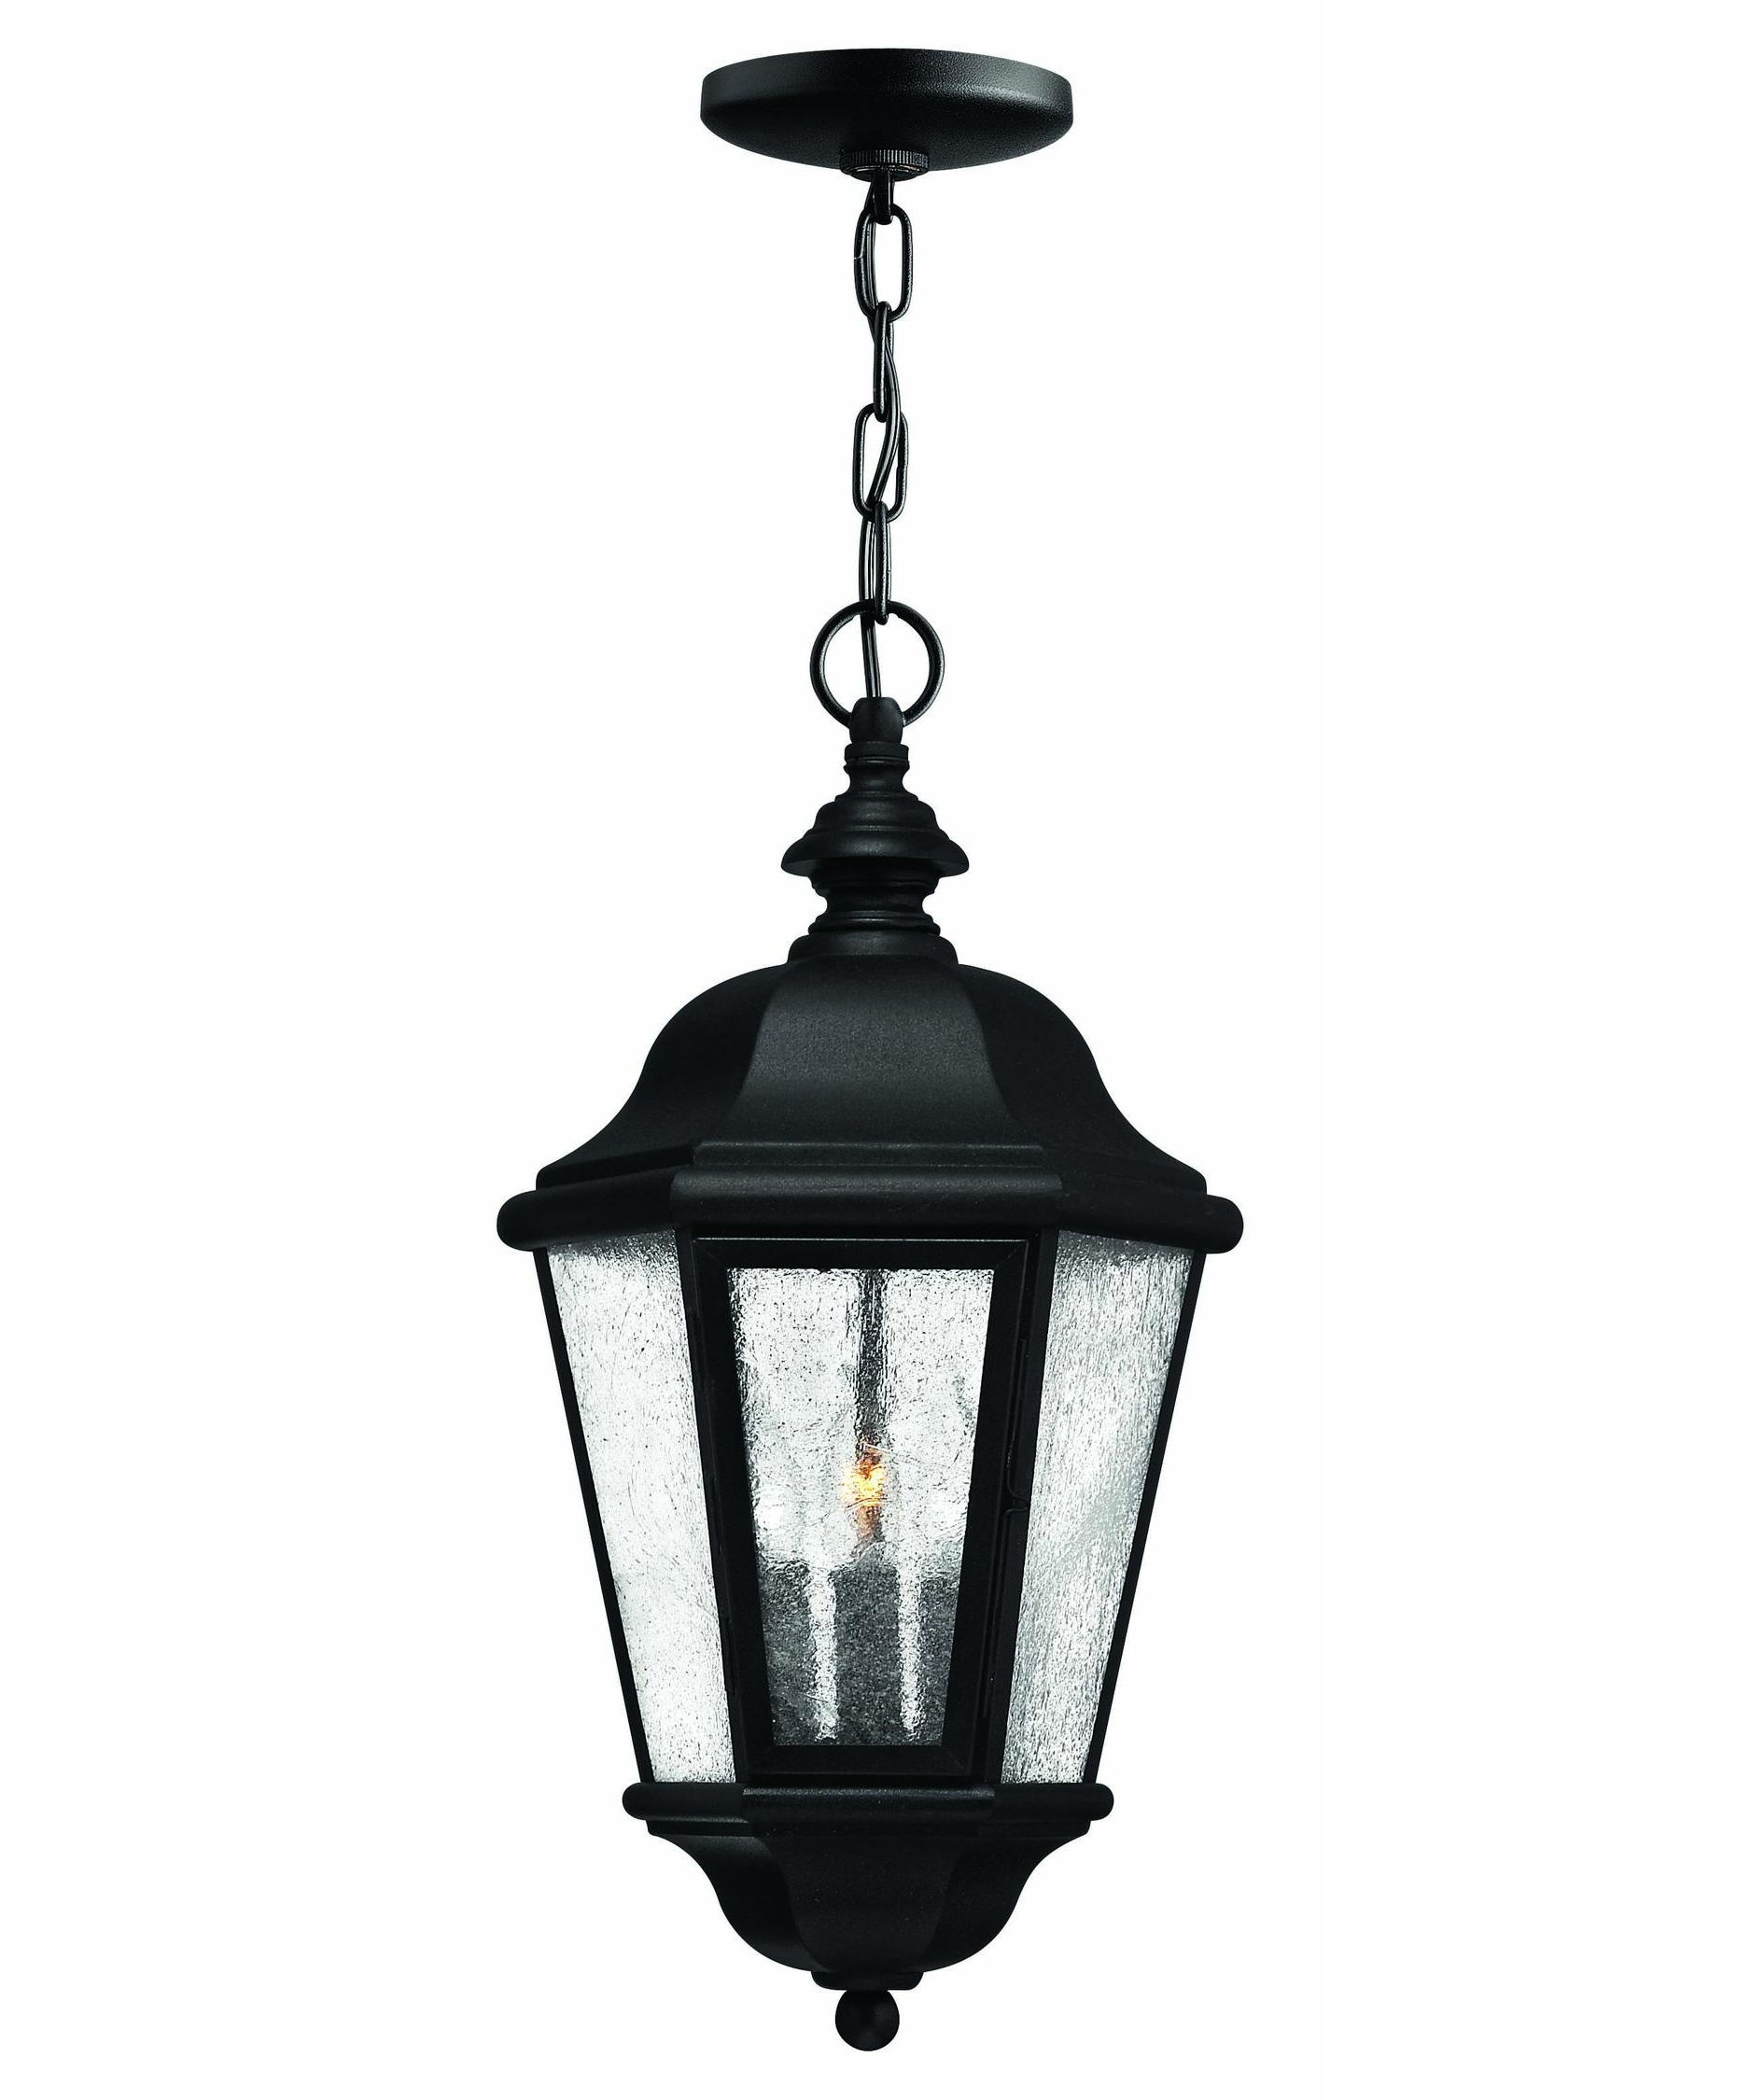 Famous Hinkley Lighting 1672 Edgewater 10 Inch Wide 3 Light Outdoor Hanging Regarding Modern Latern Hinkley Lighting (View 7 of 20)